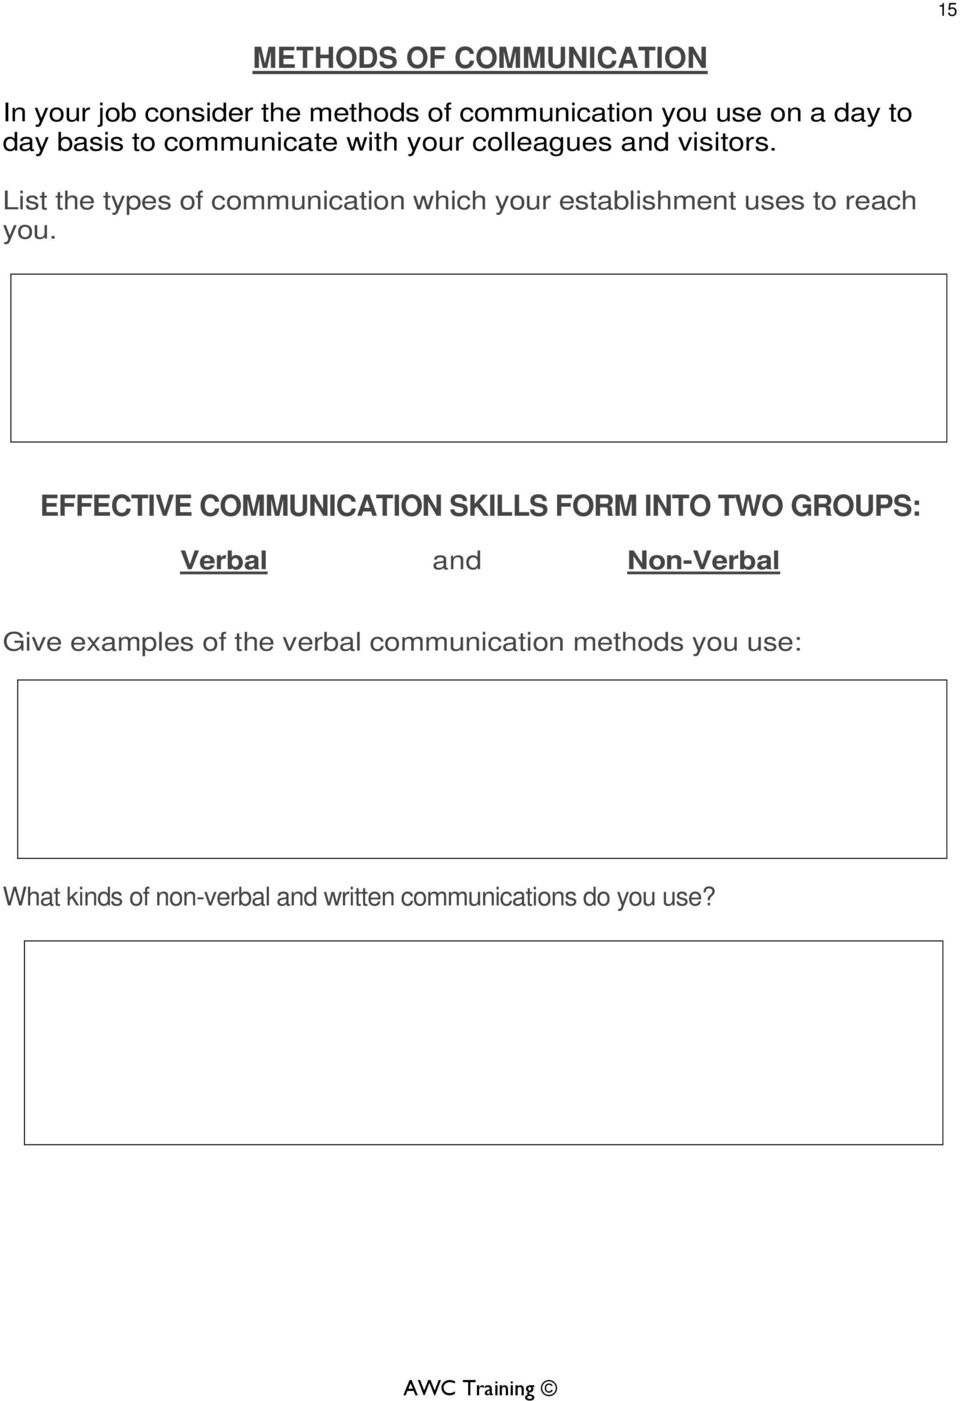 Effective Working Relationships - PDF